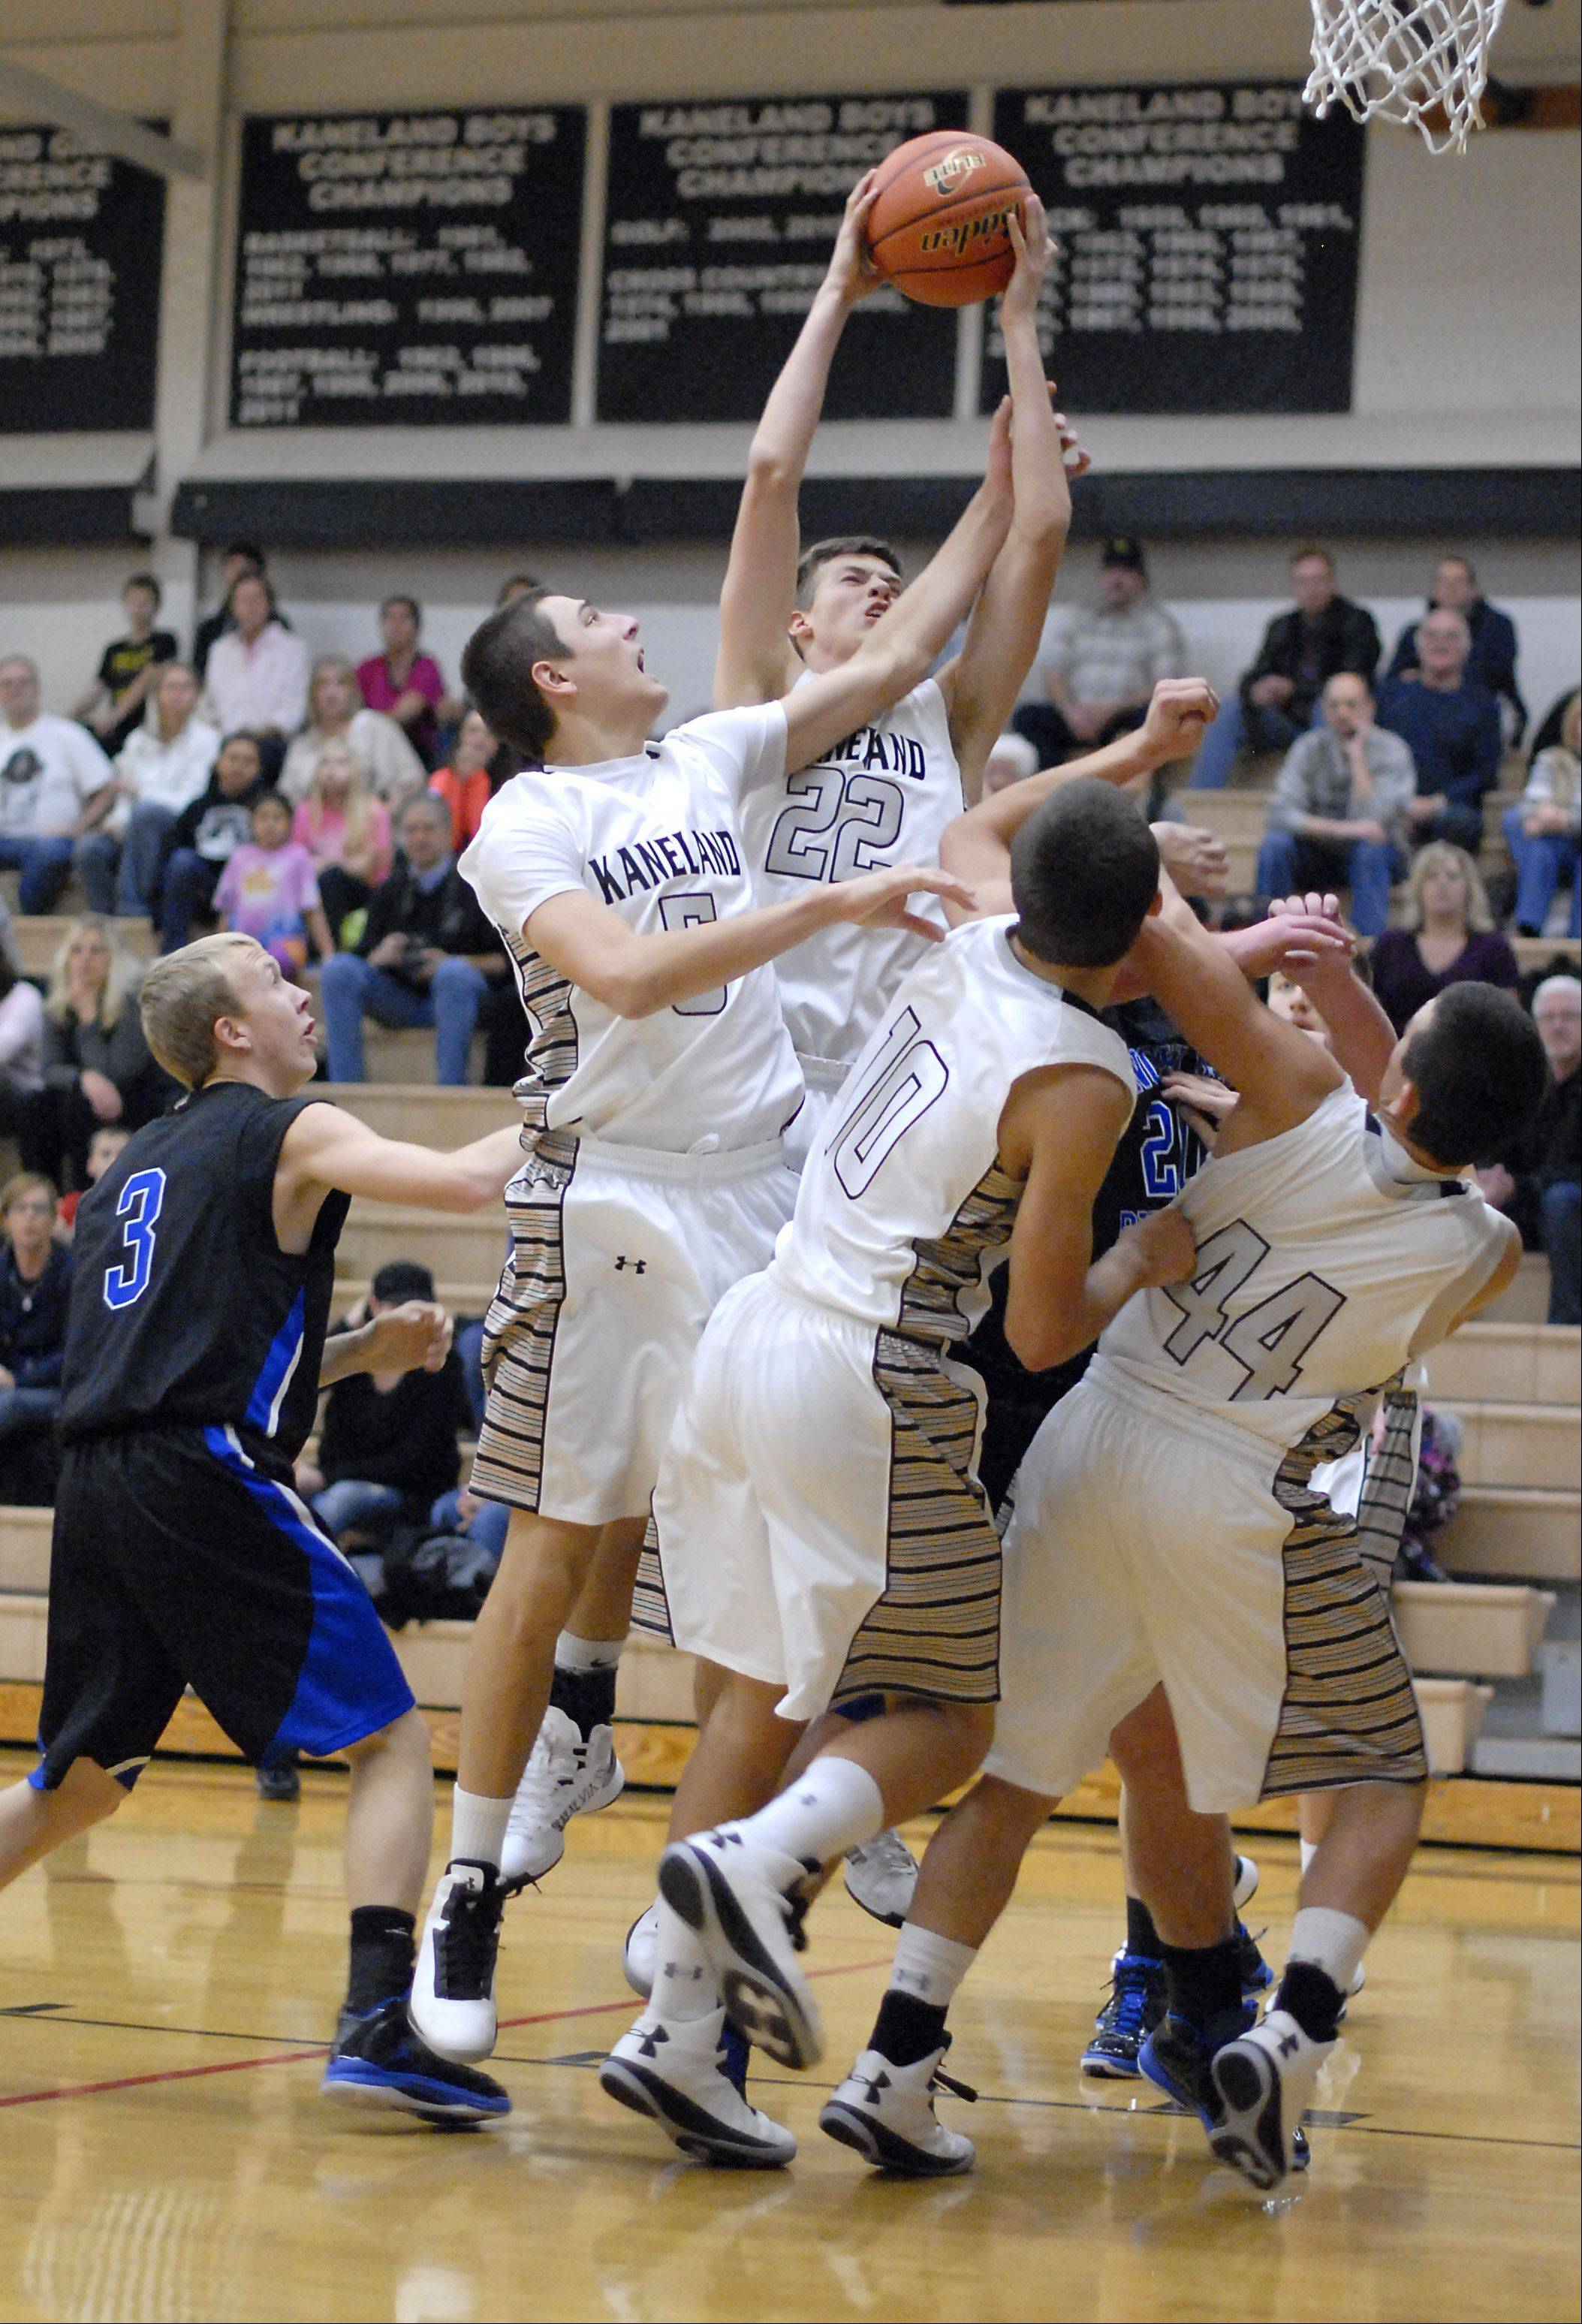 Kaneland's Dan Miller reaches up and grabs a rebound in the first quarter.